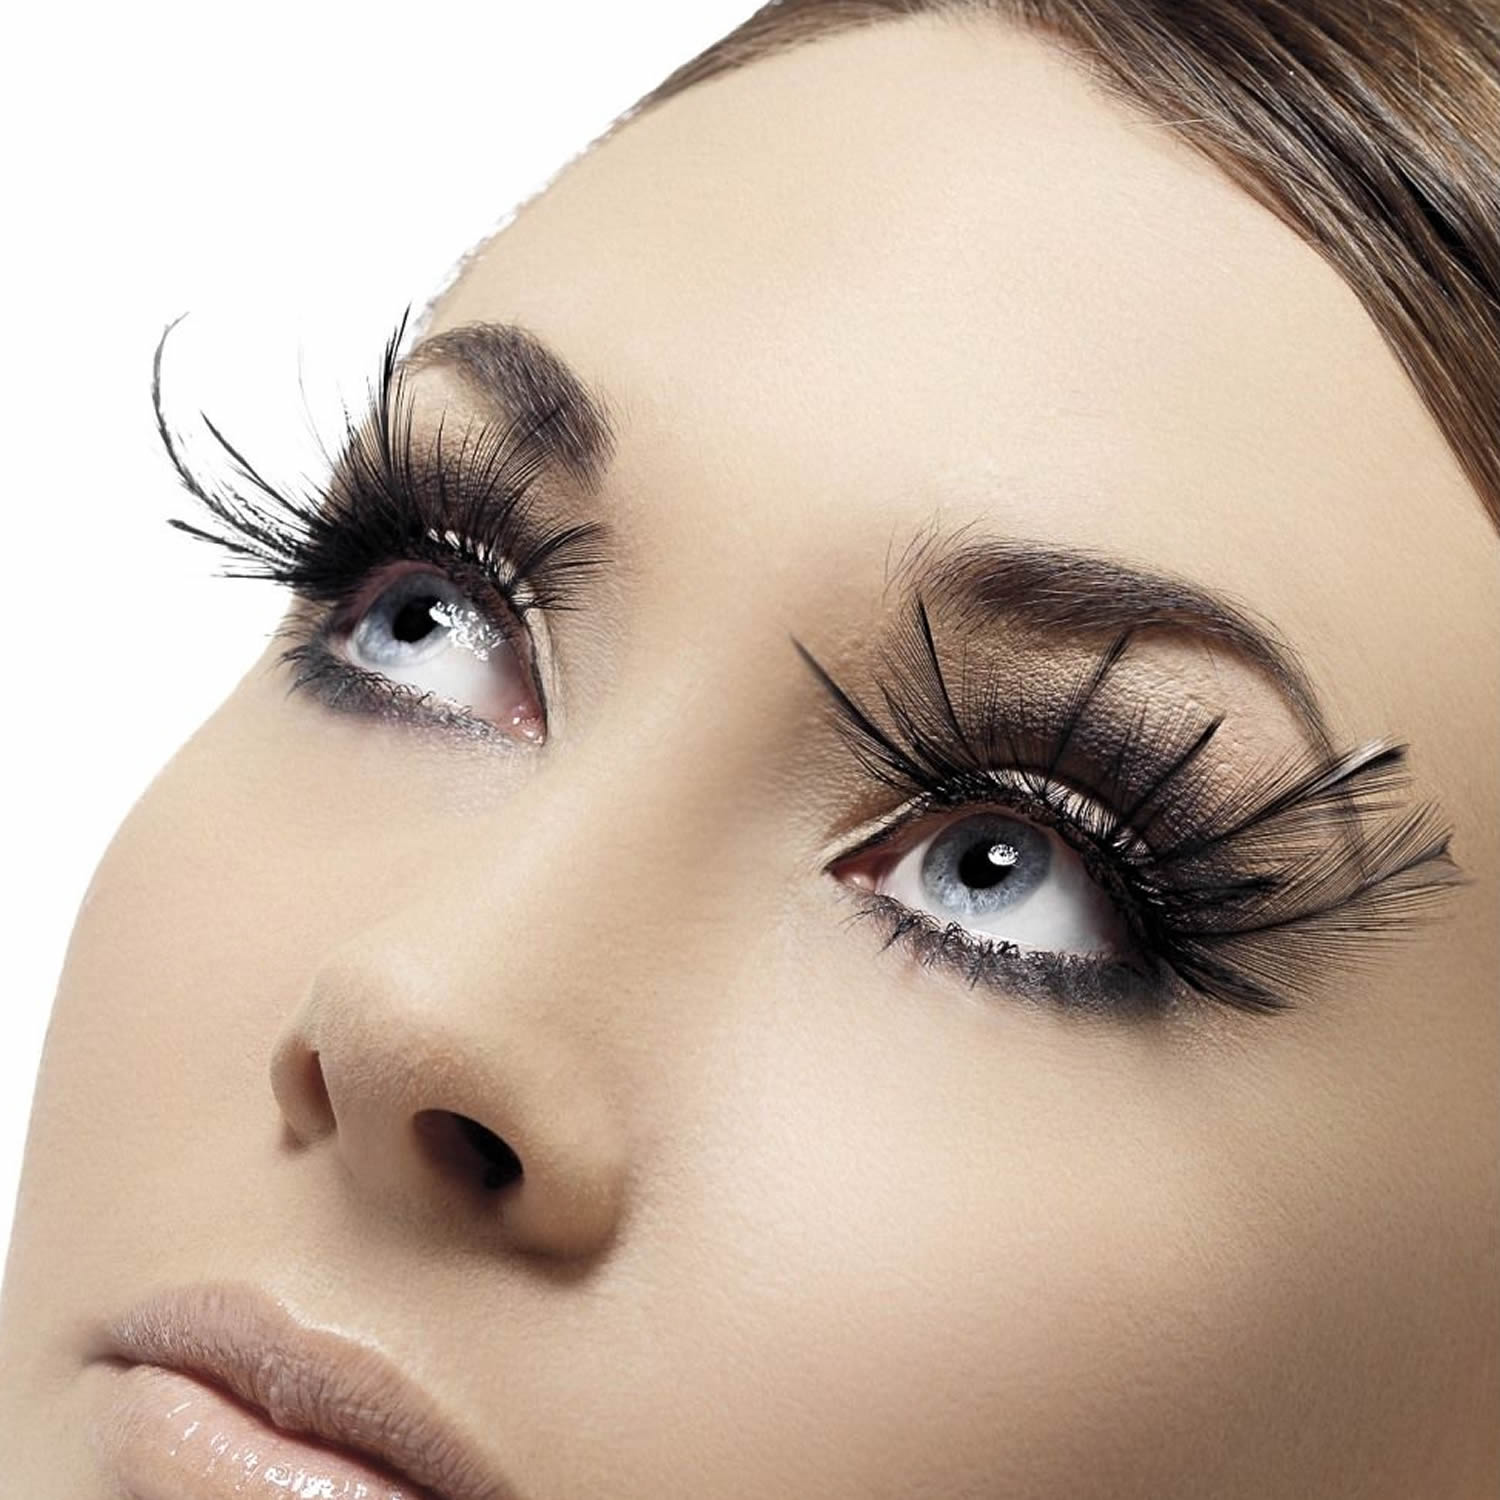 Fever False Eyelashes - Black (w/ Feather Plumes) - Red Carpet FX - Professional Makeup